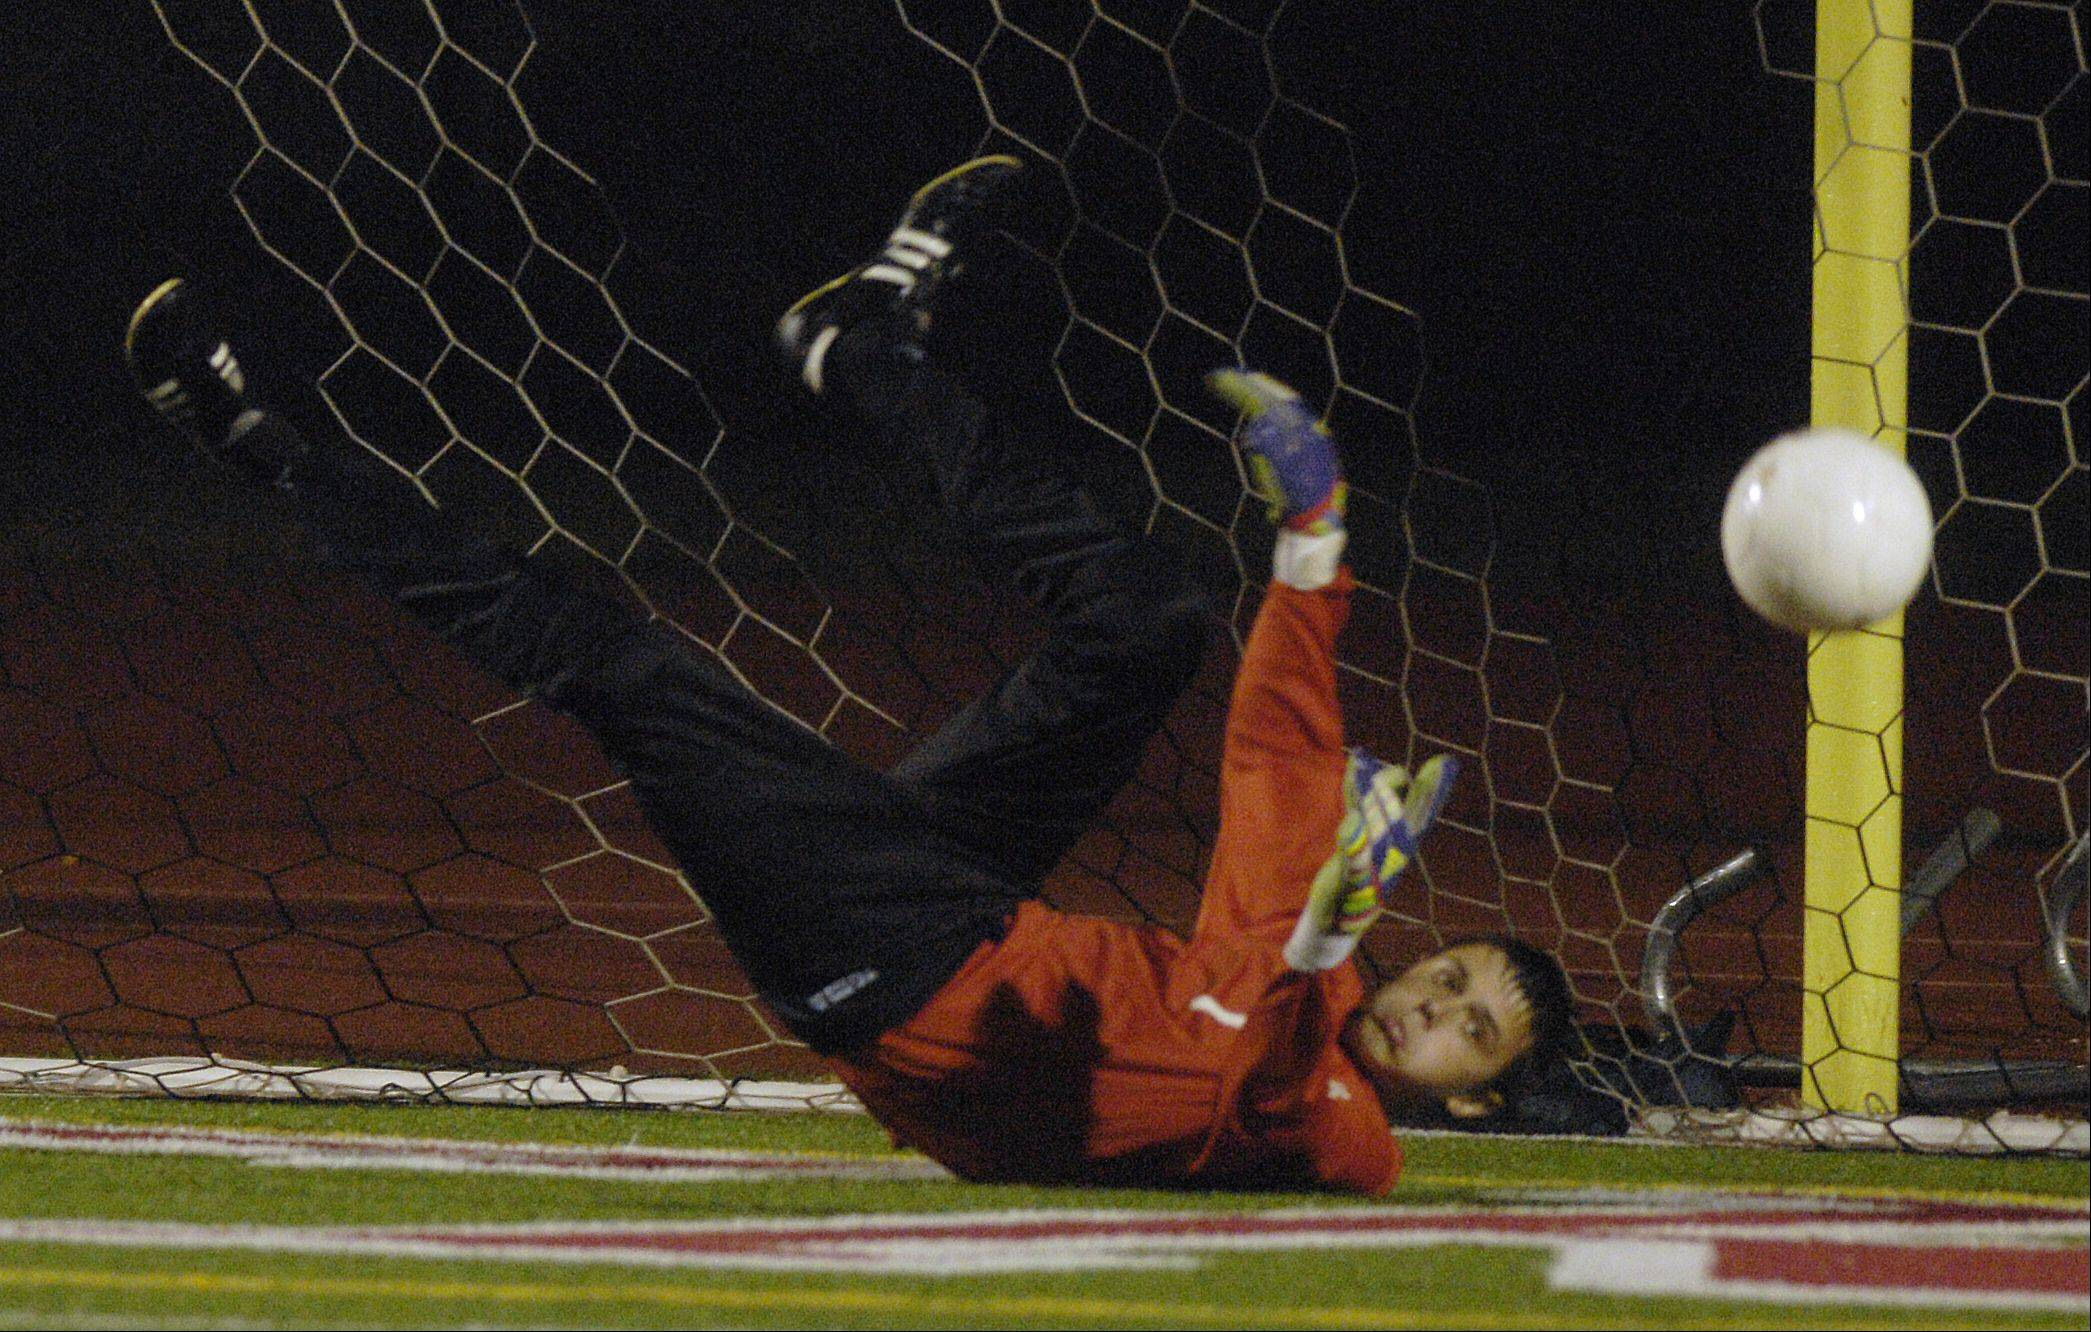 Goalkeeper Duncan Turnbull of Geneva blocks a shot on goal during his team's 7-0 loss to Naperville Central, in the boys soccer regional semifinals Wednesday in Naperville.